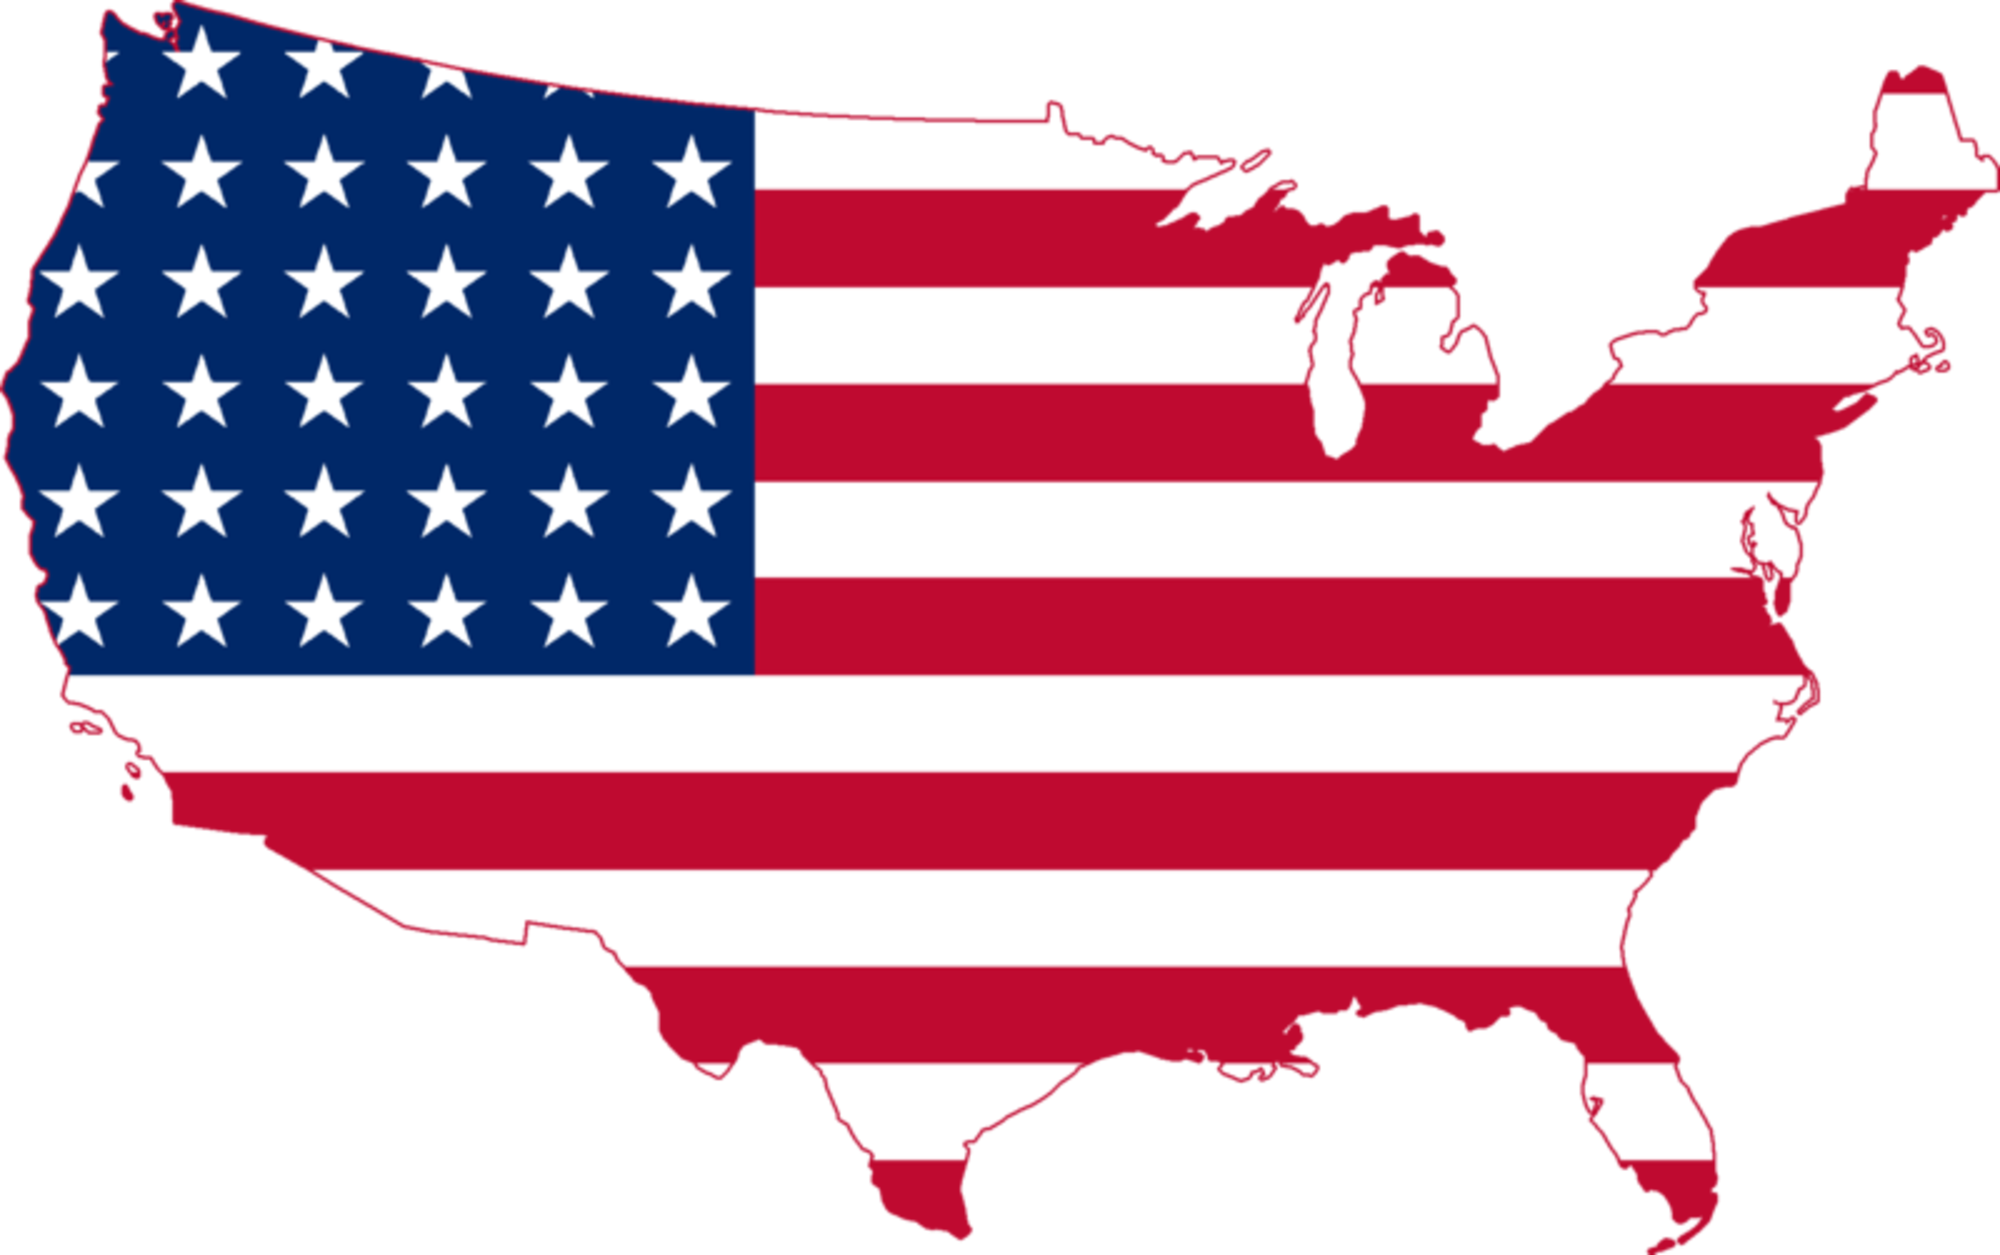 Usa clipart strong state government. Five questions we should